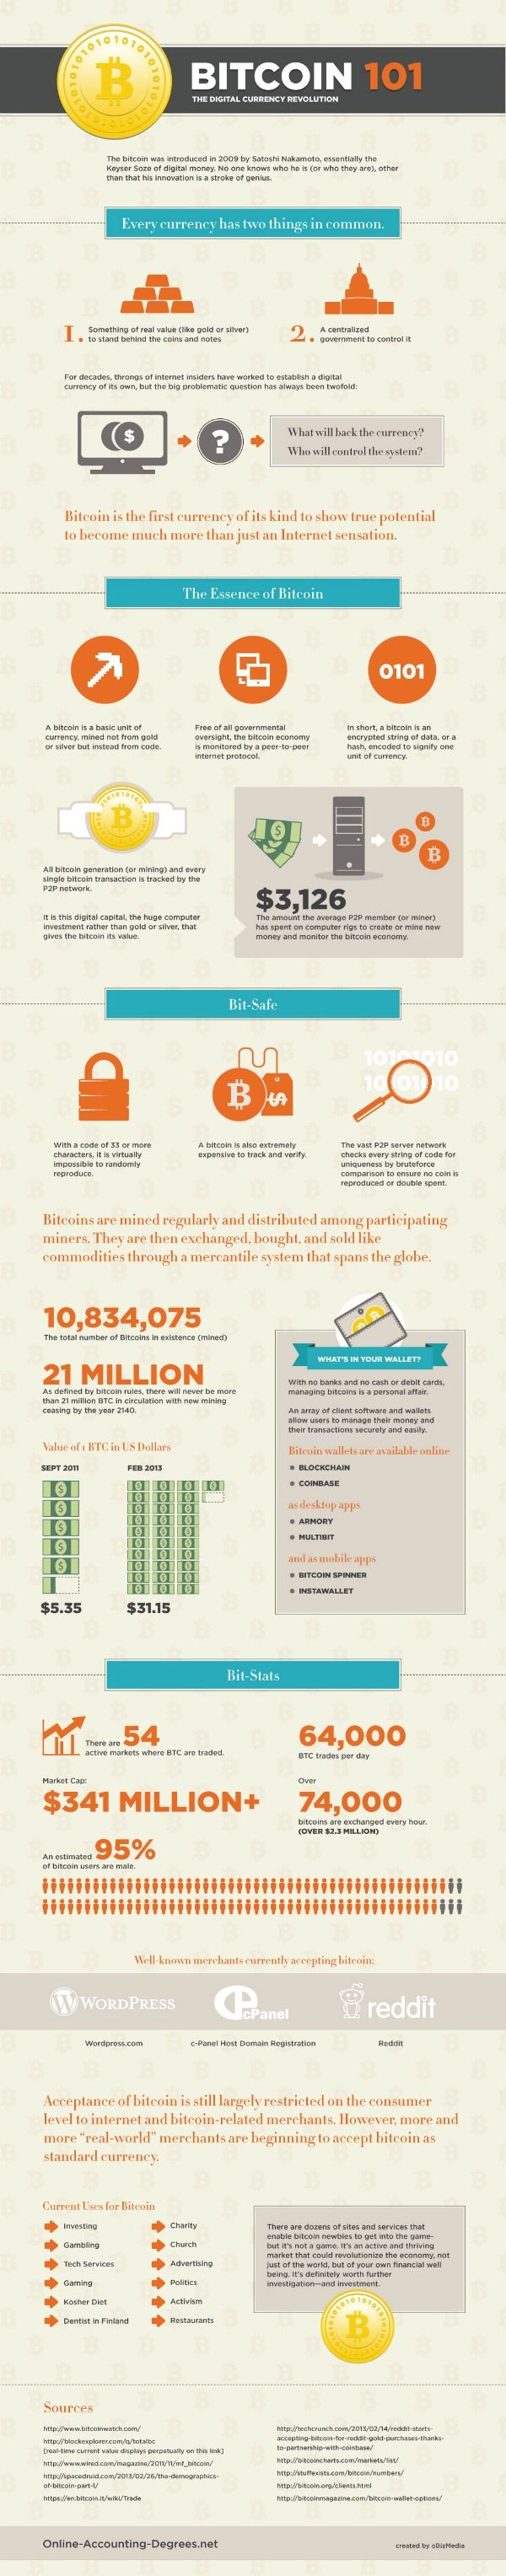 Everything you want to know about bitcoins #infographic #bitcoin